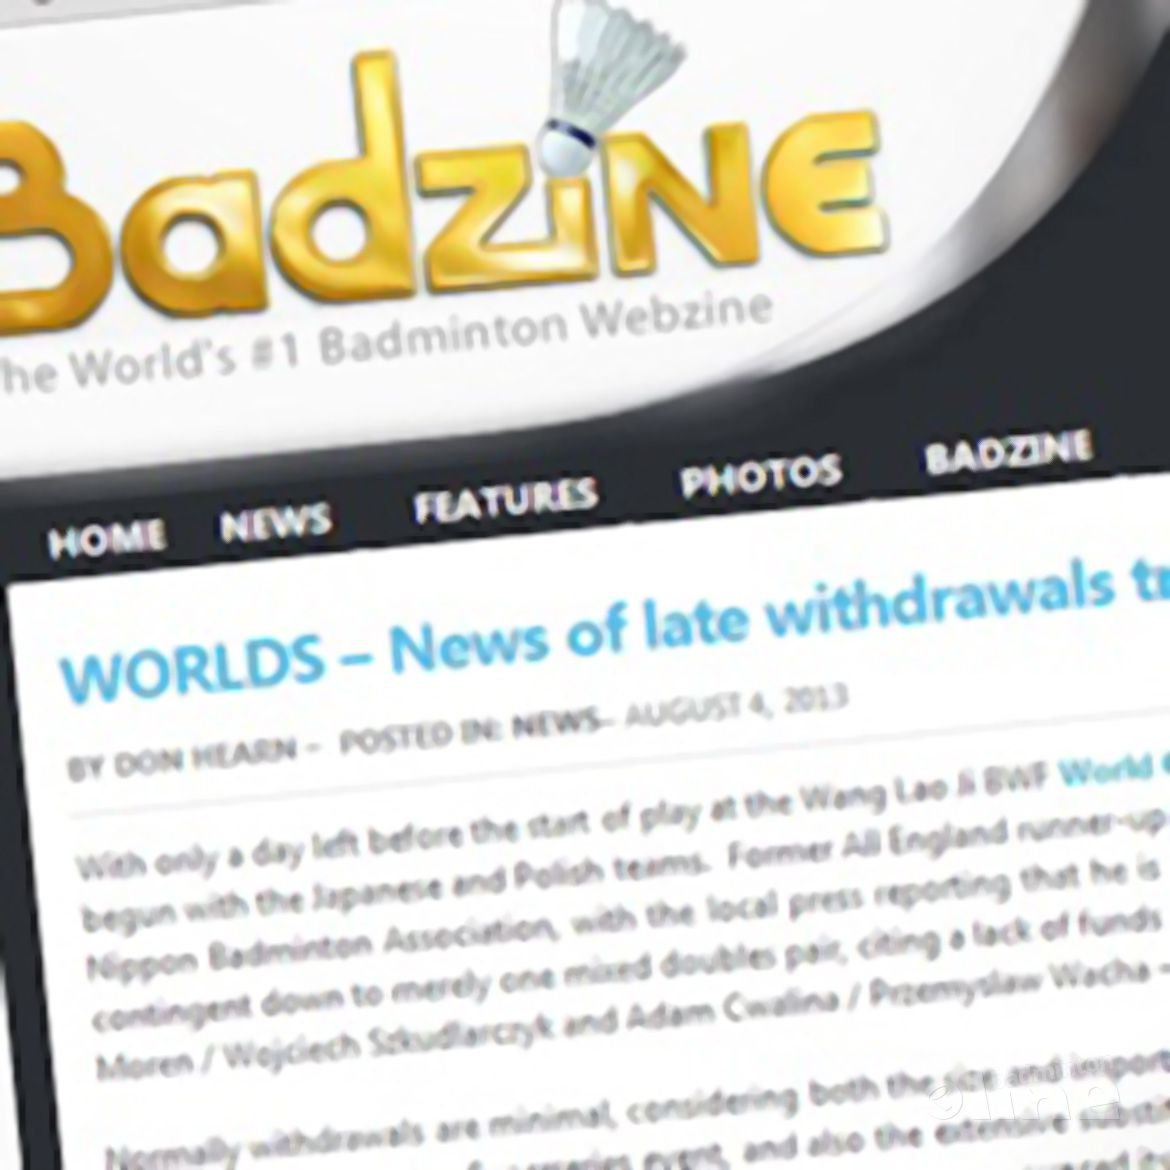 Badzine: 'News of late withdrawals trickles in early'